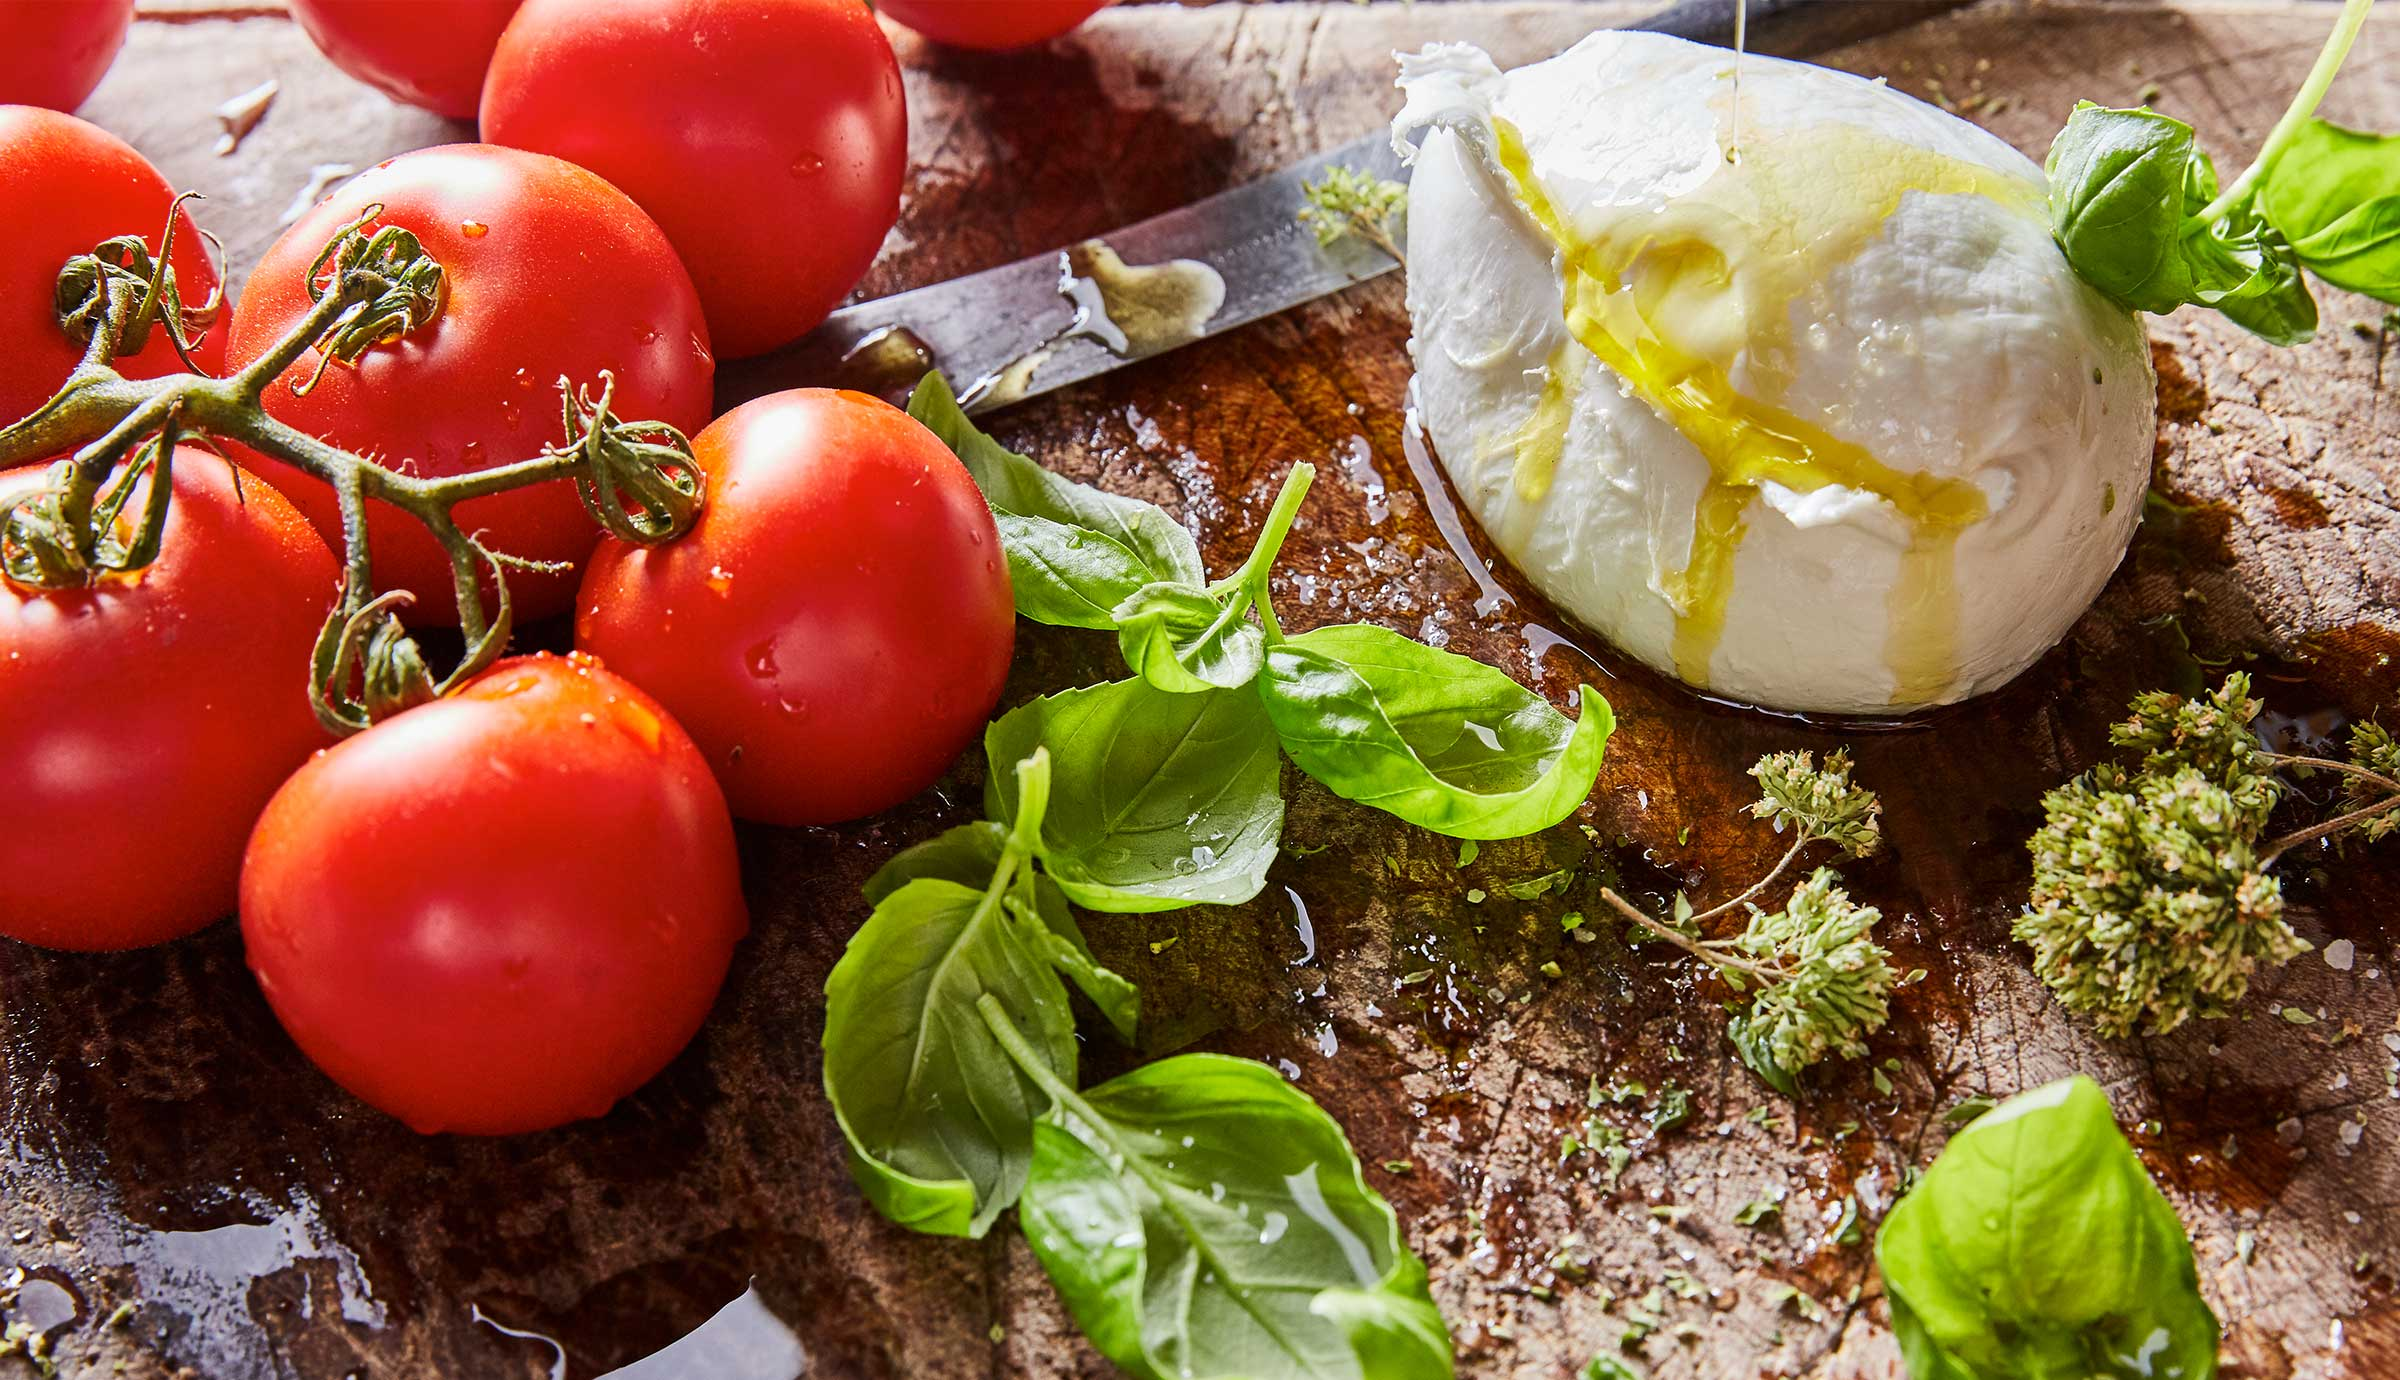 Tomatoes, mozzarella cheese, basil and oregano sit on a wood surface